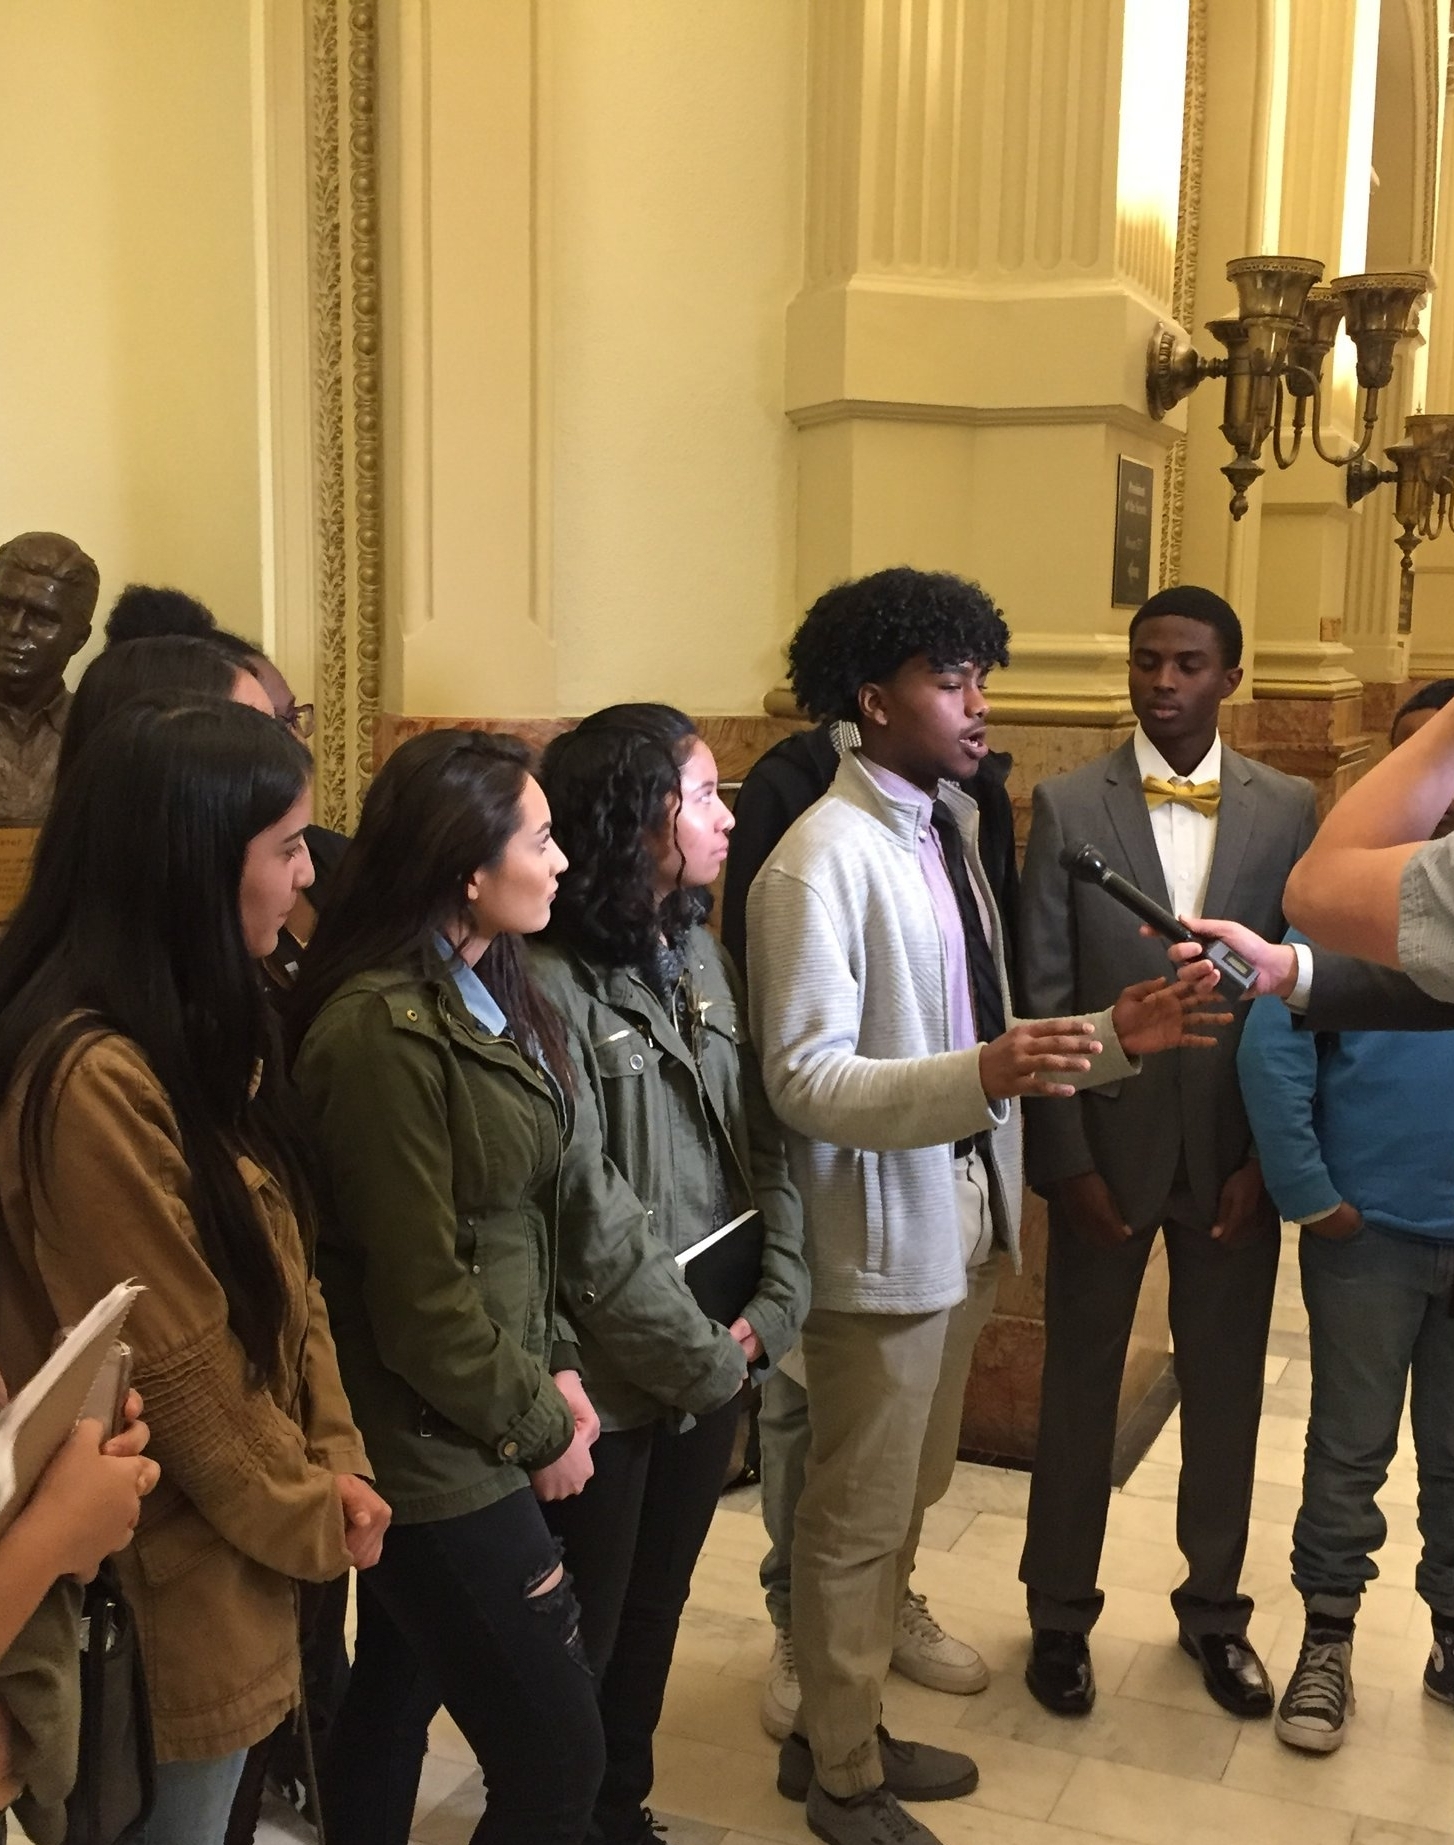 About SV2 - Student Voice, Student Vote (SV2) is a growing coalition of young people, parents, educators, youth organizations, and civic organizations seeking to change Colorado state law to allow 16- and 17-year-olds the right to vote in school board elections.